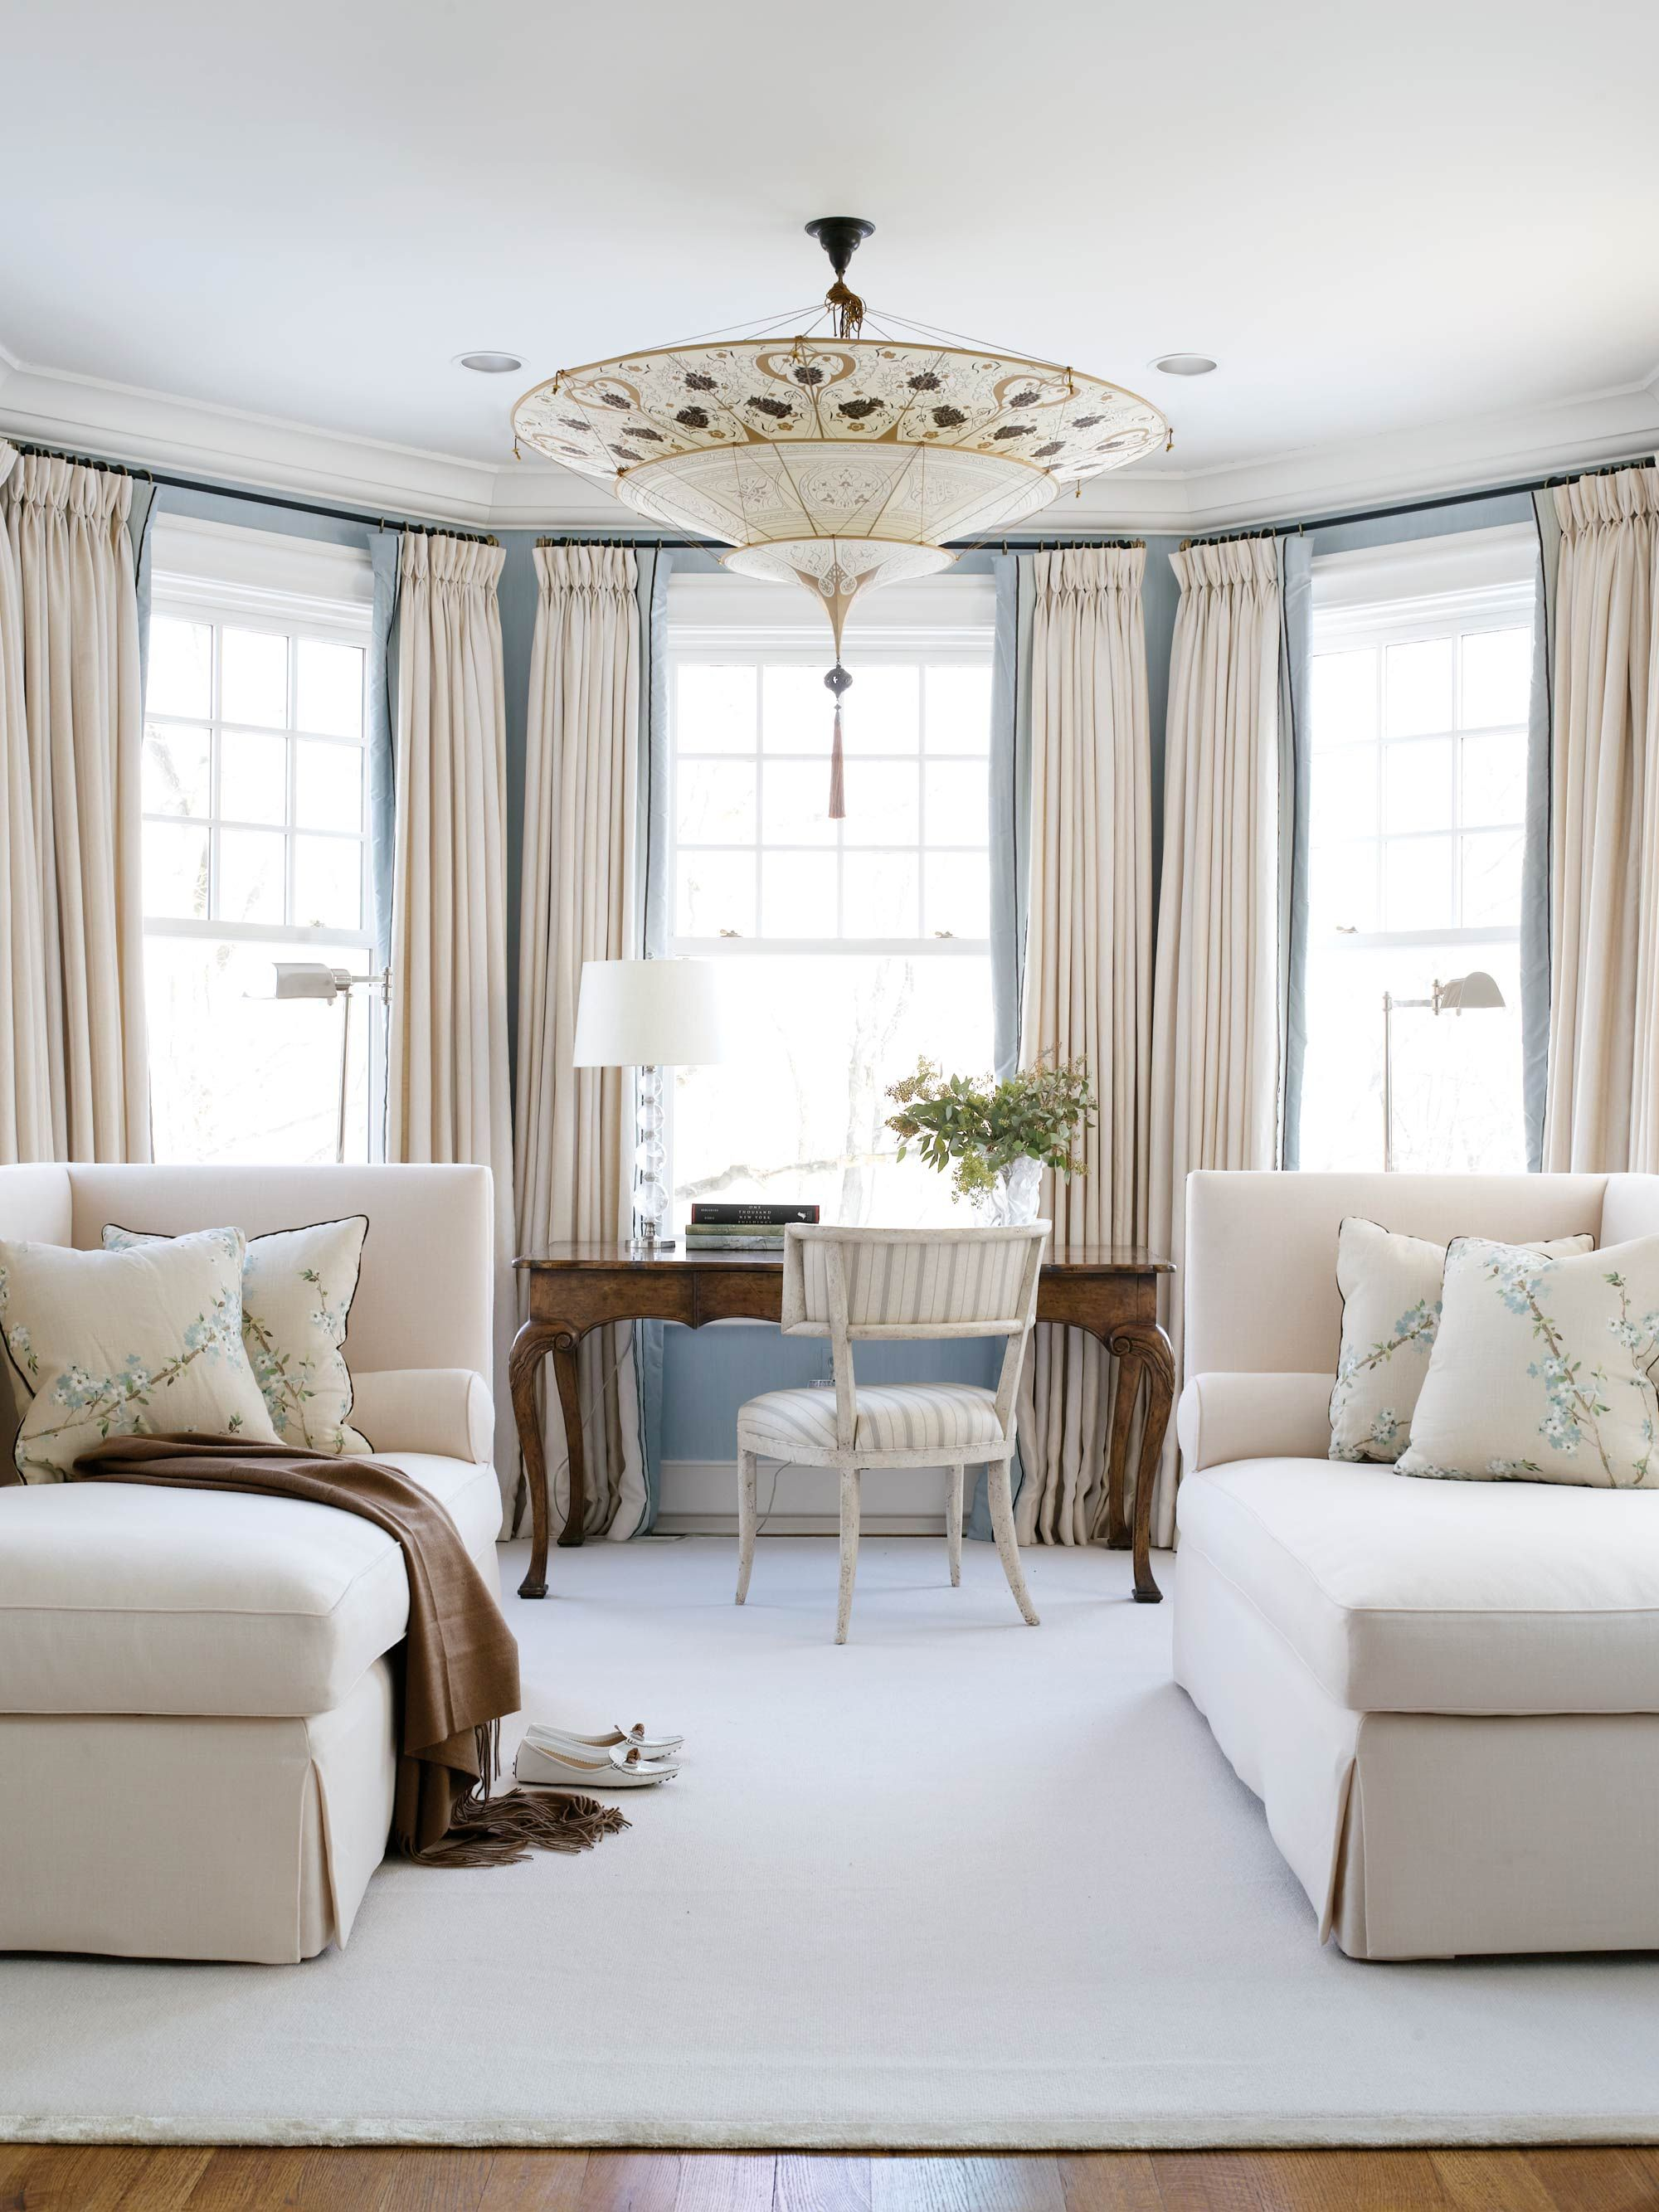 Master Bedroom With Sitting Area with its pale blue walls and plush cream wool chaises, lovely